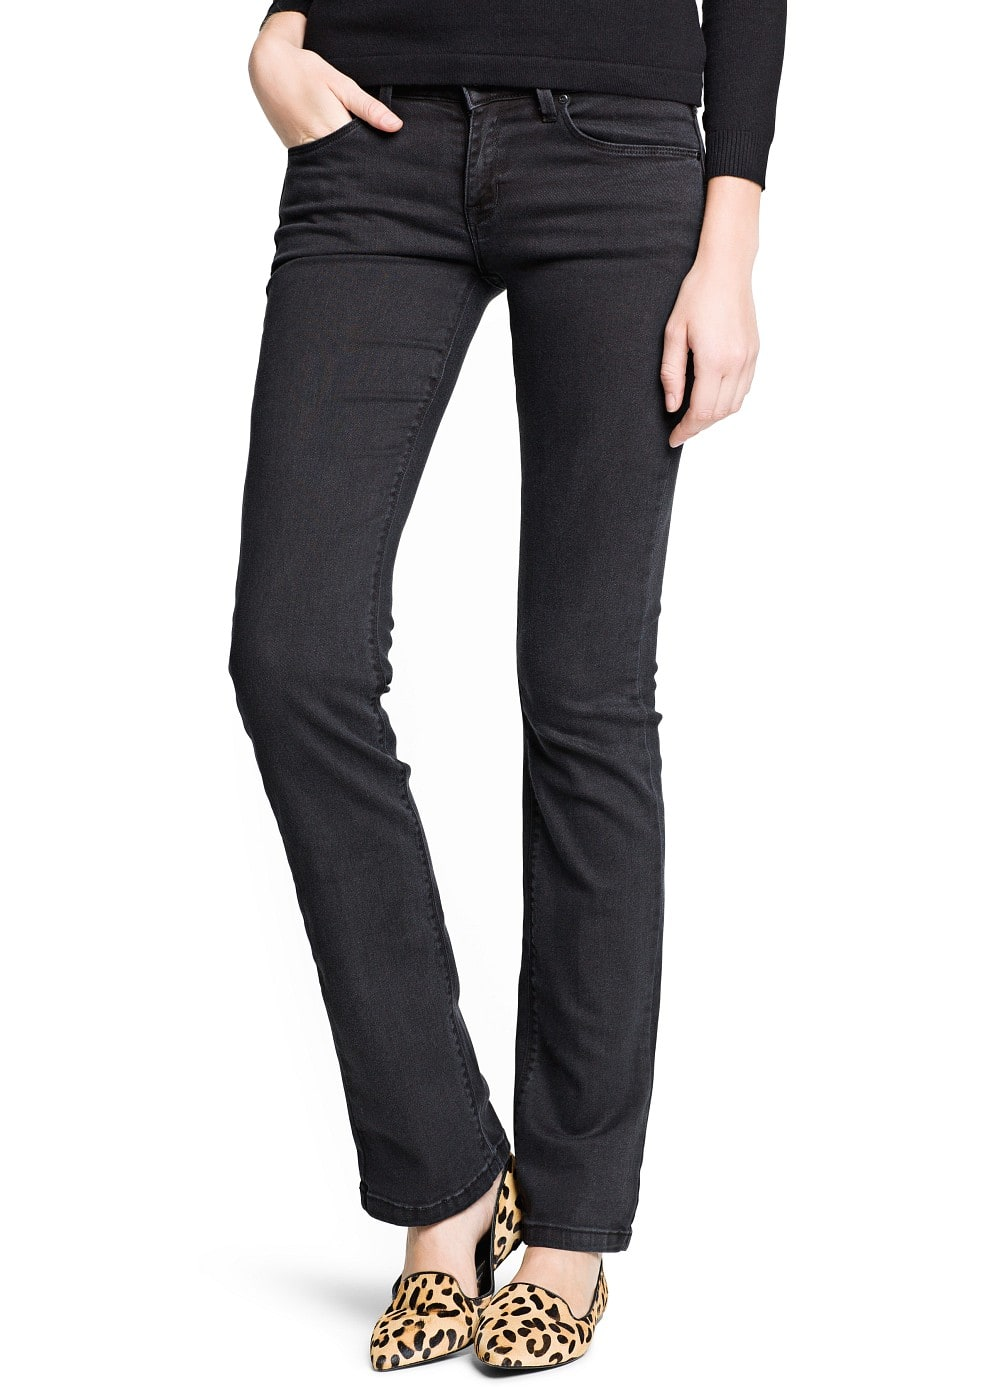 Straight-fit black jeans